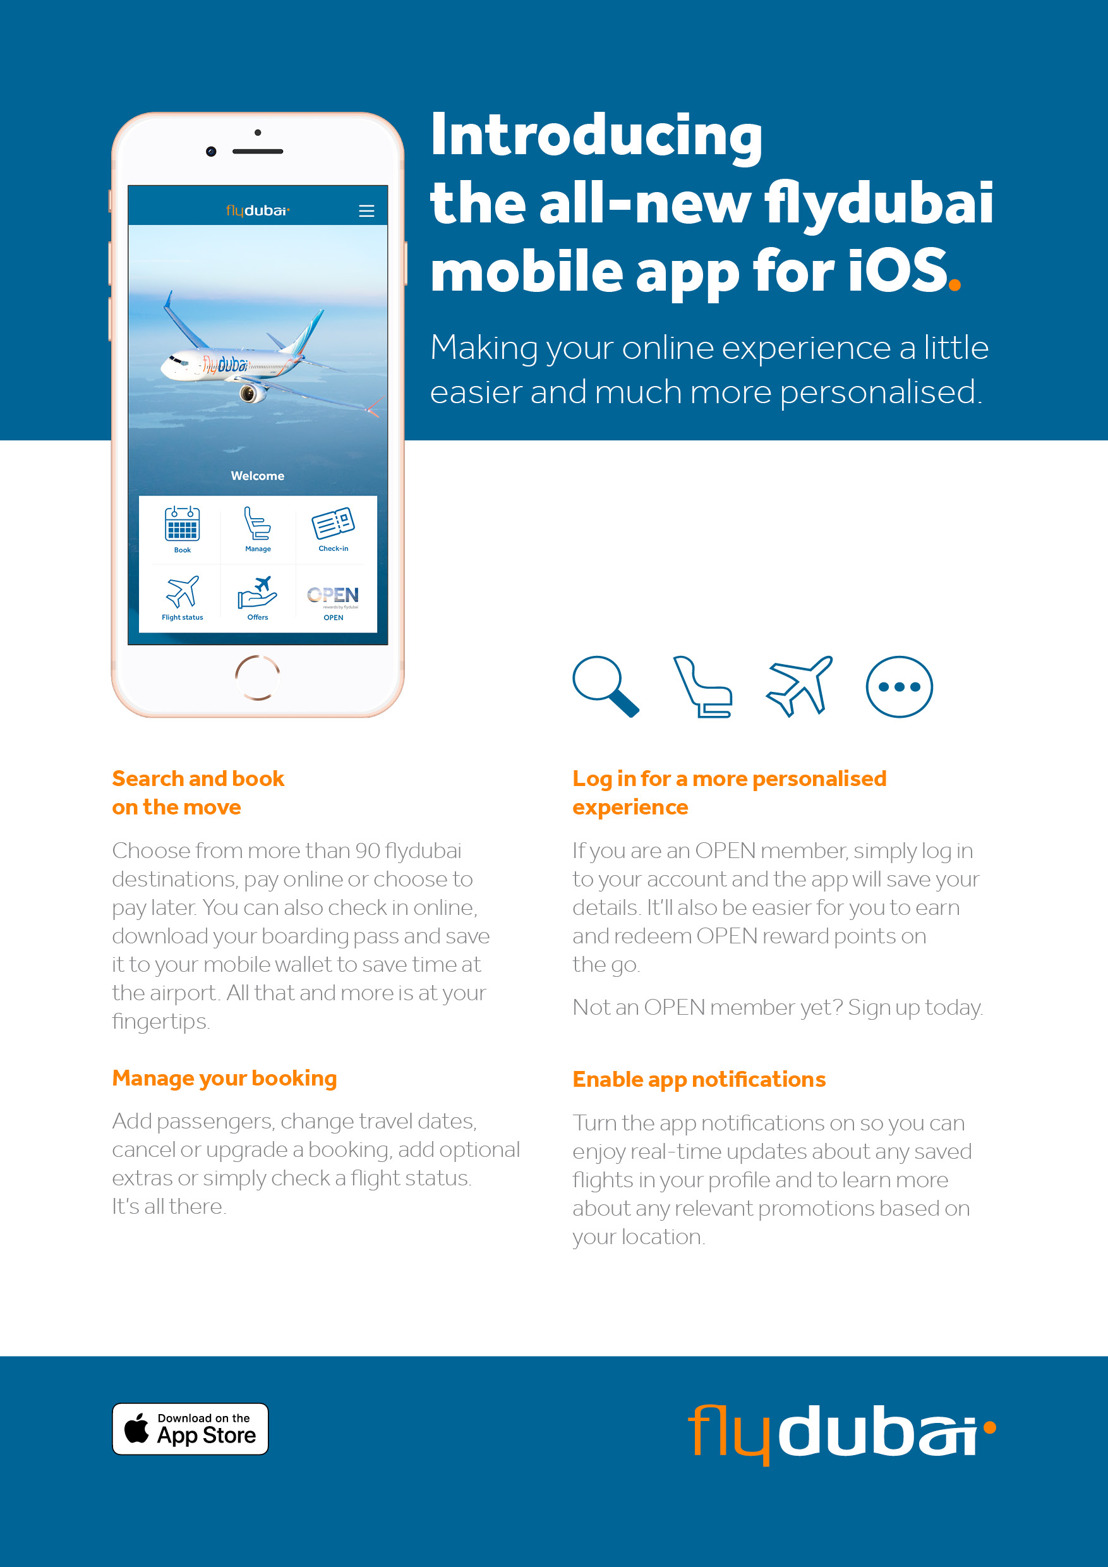 Introducing the all new flydubai mobile app for iOS